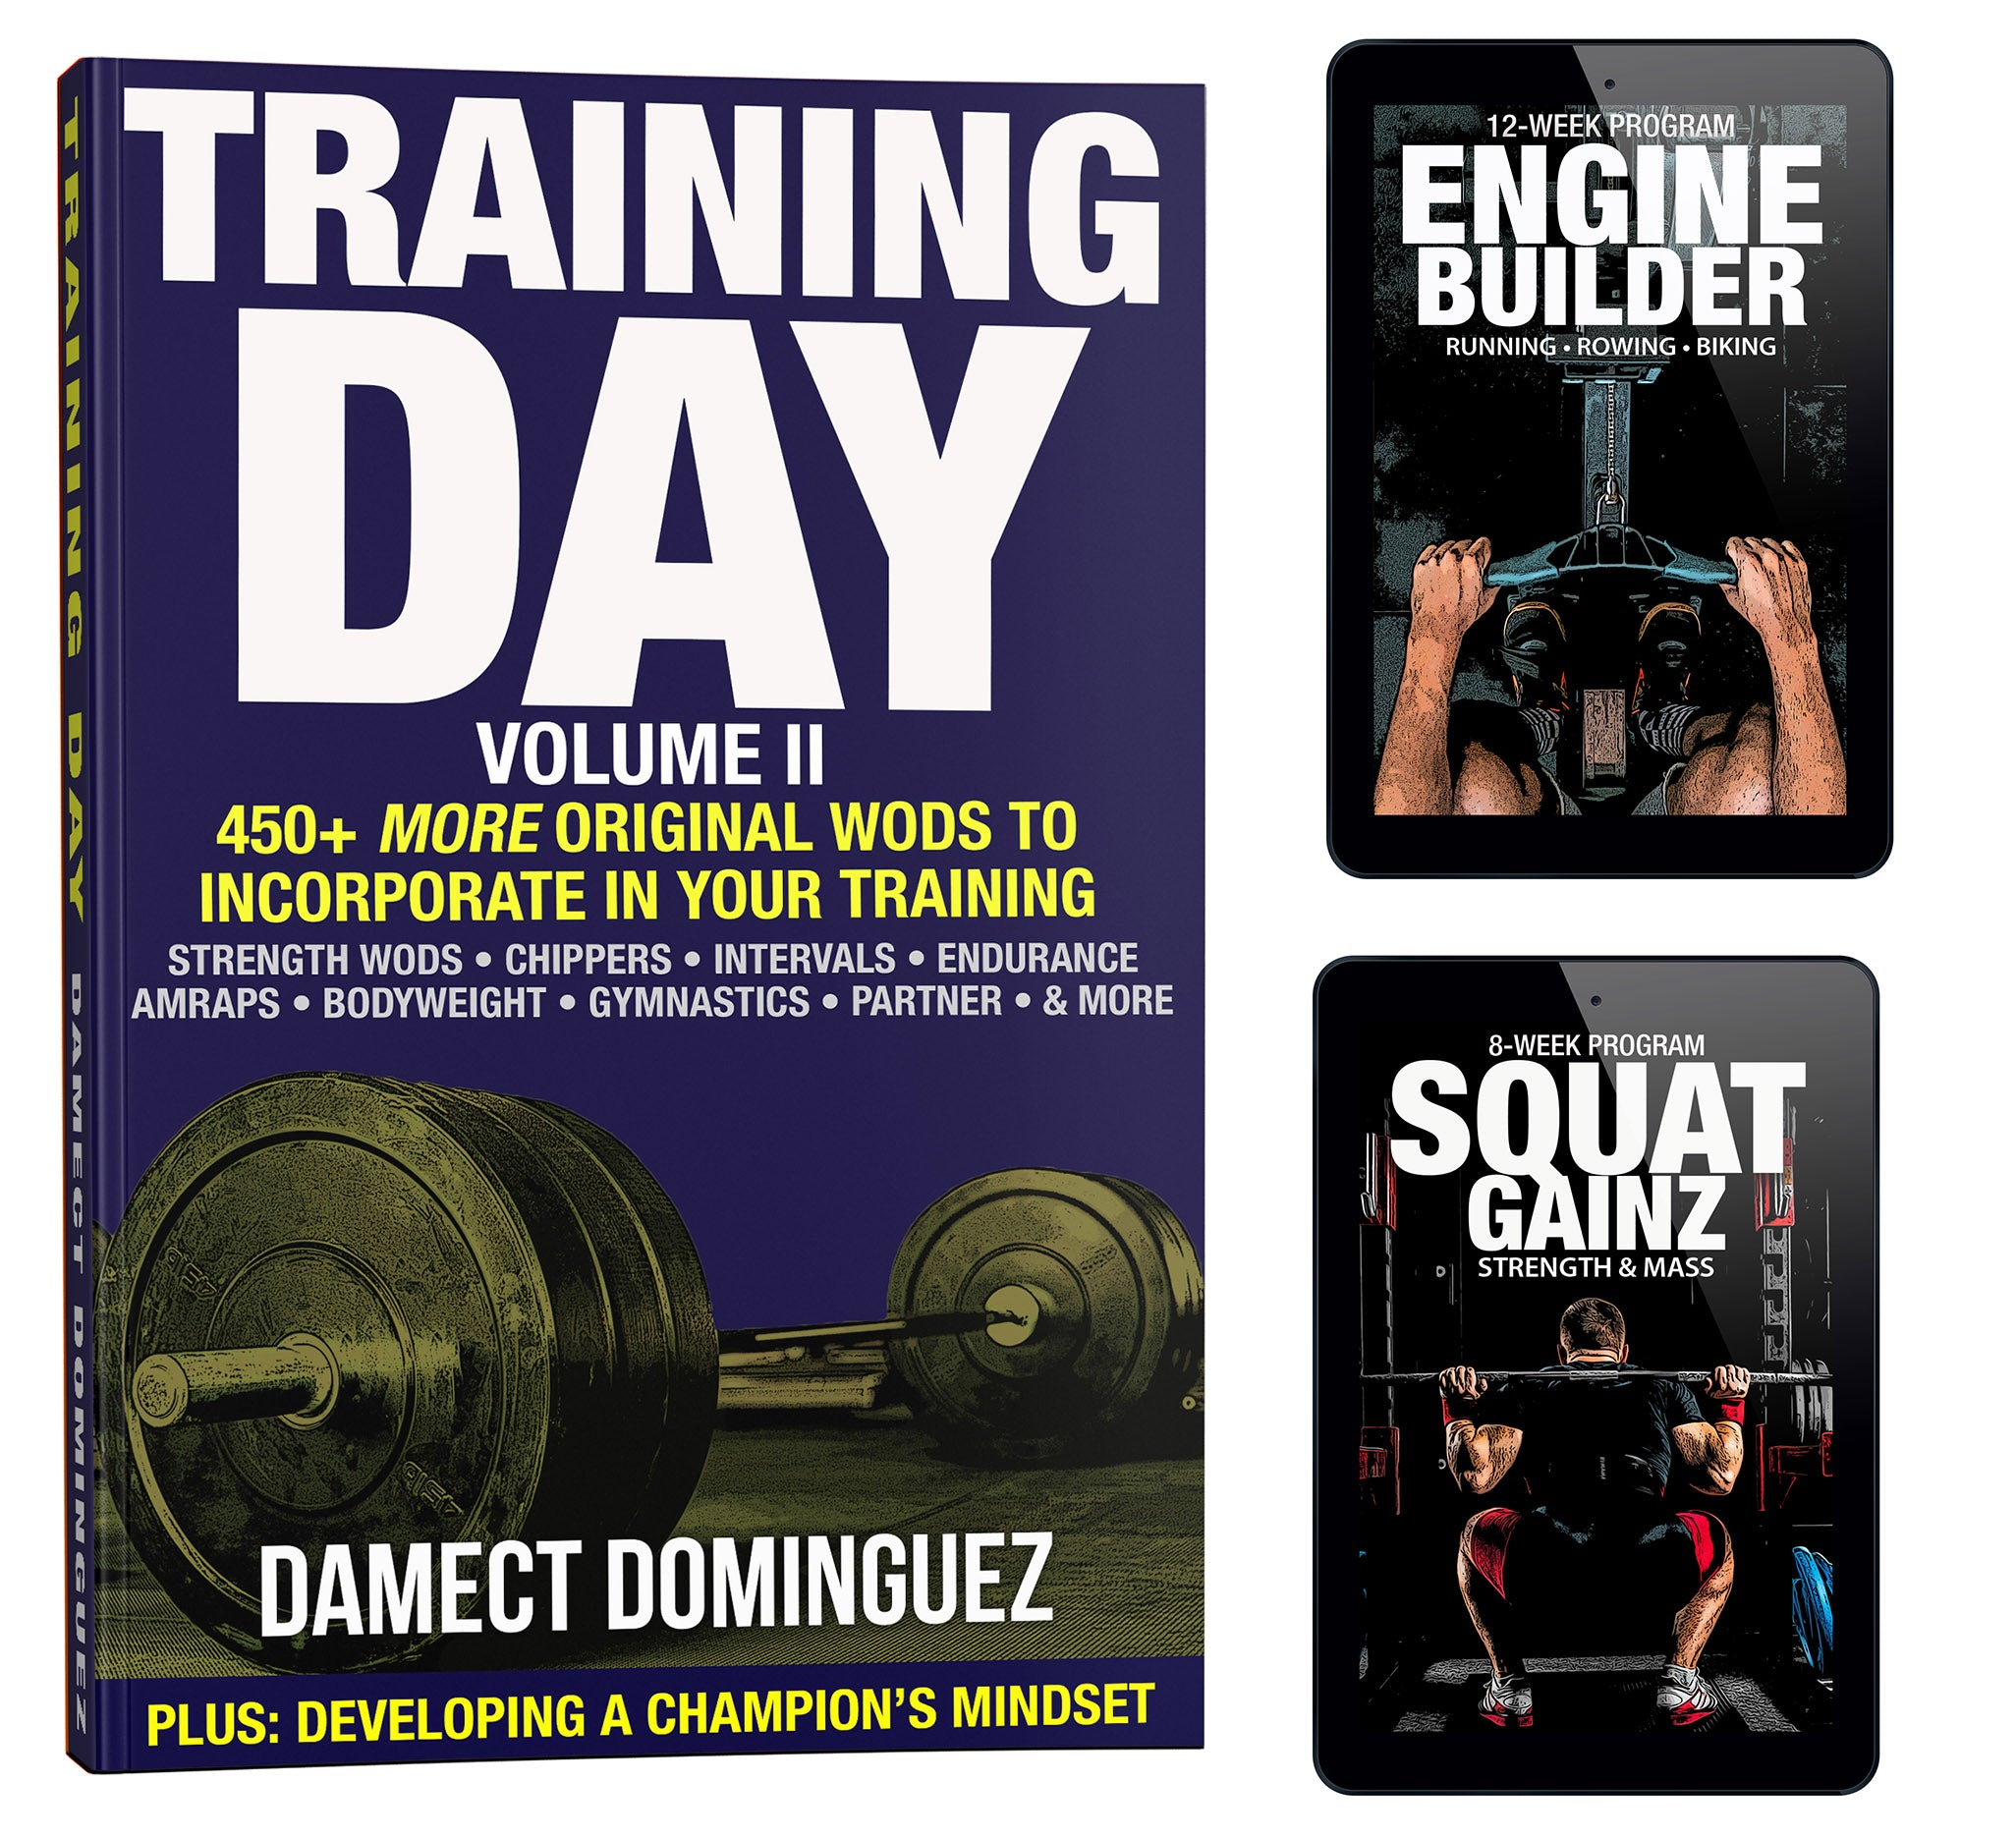 Training Day Bundle #3: Training Day Volume II + Squat & Endurance Programs